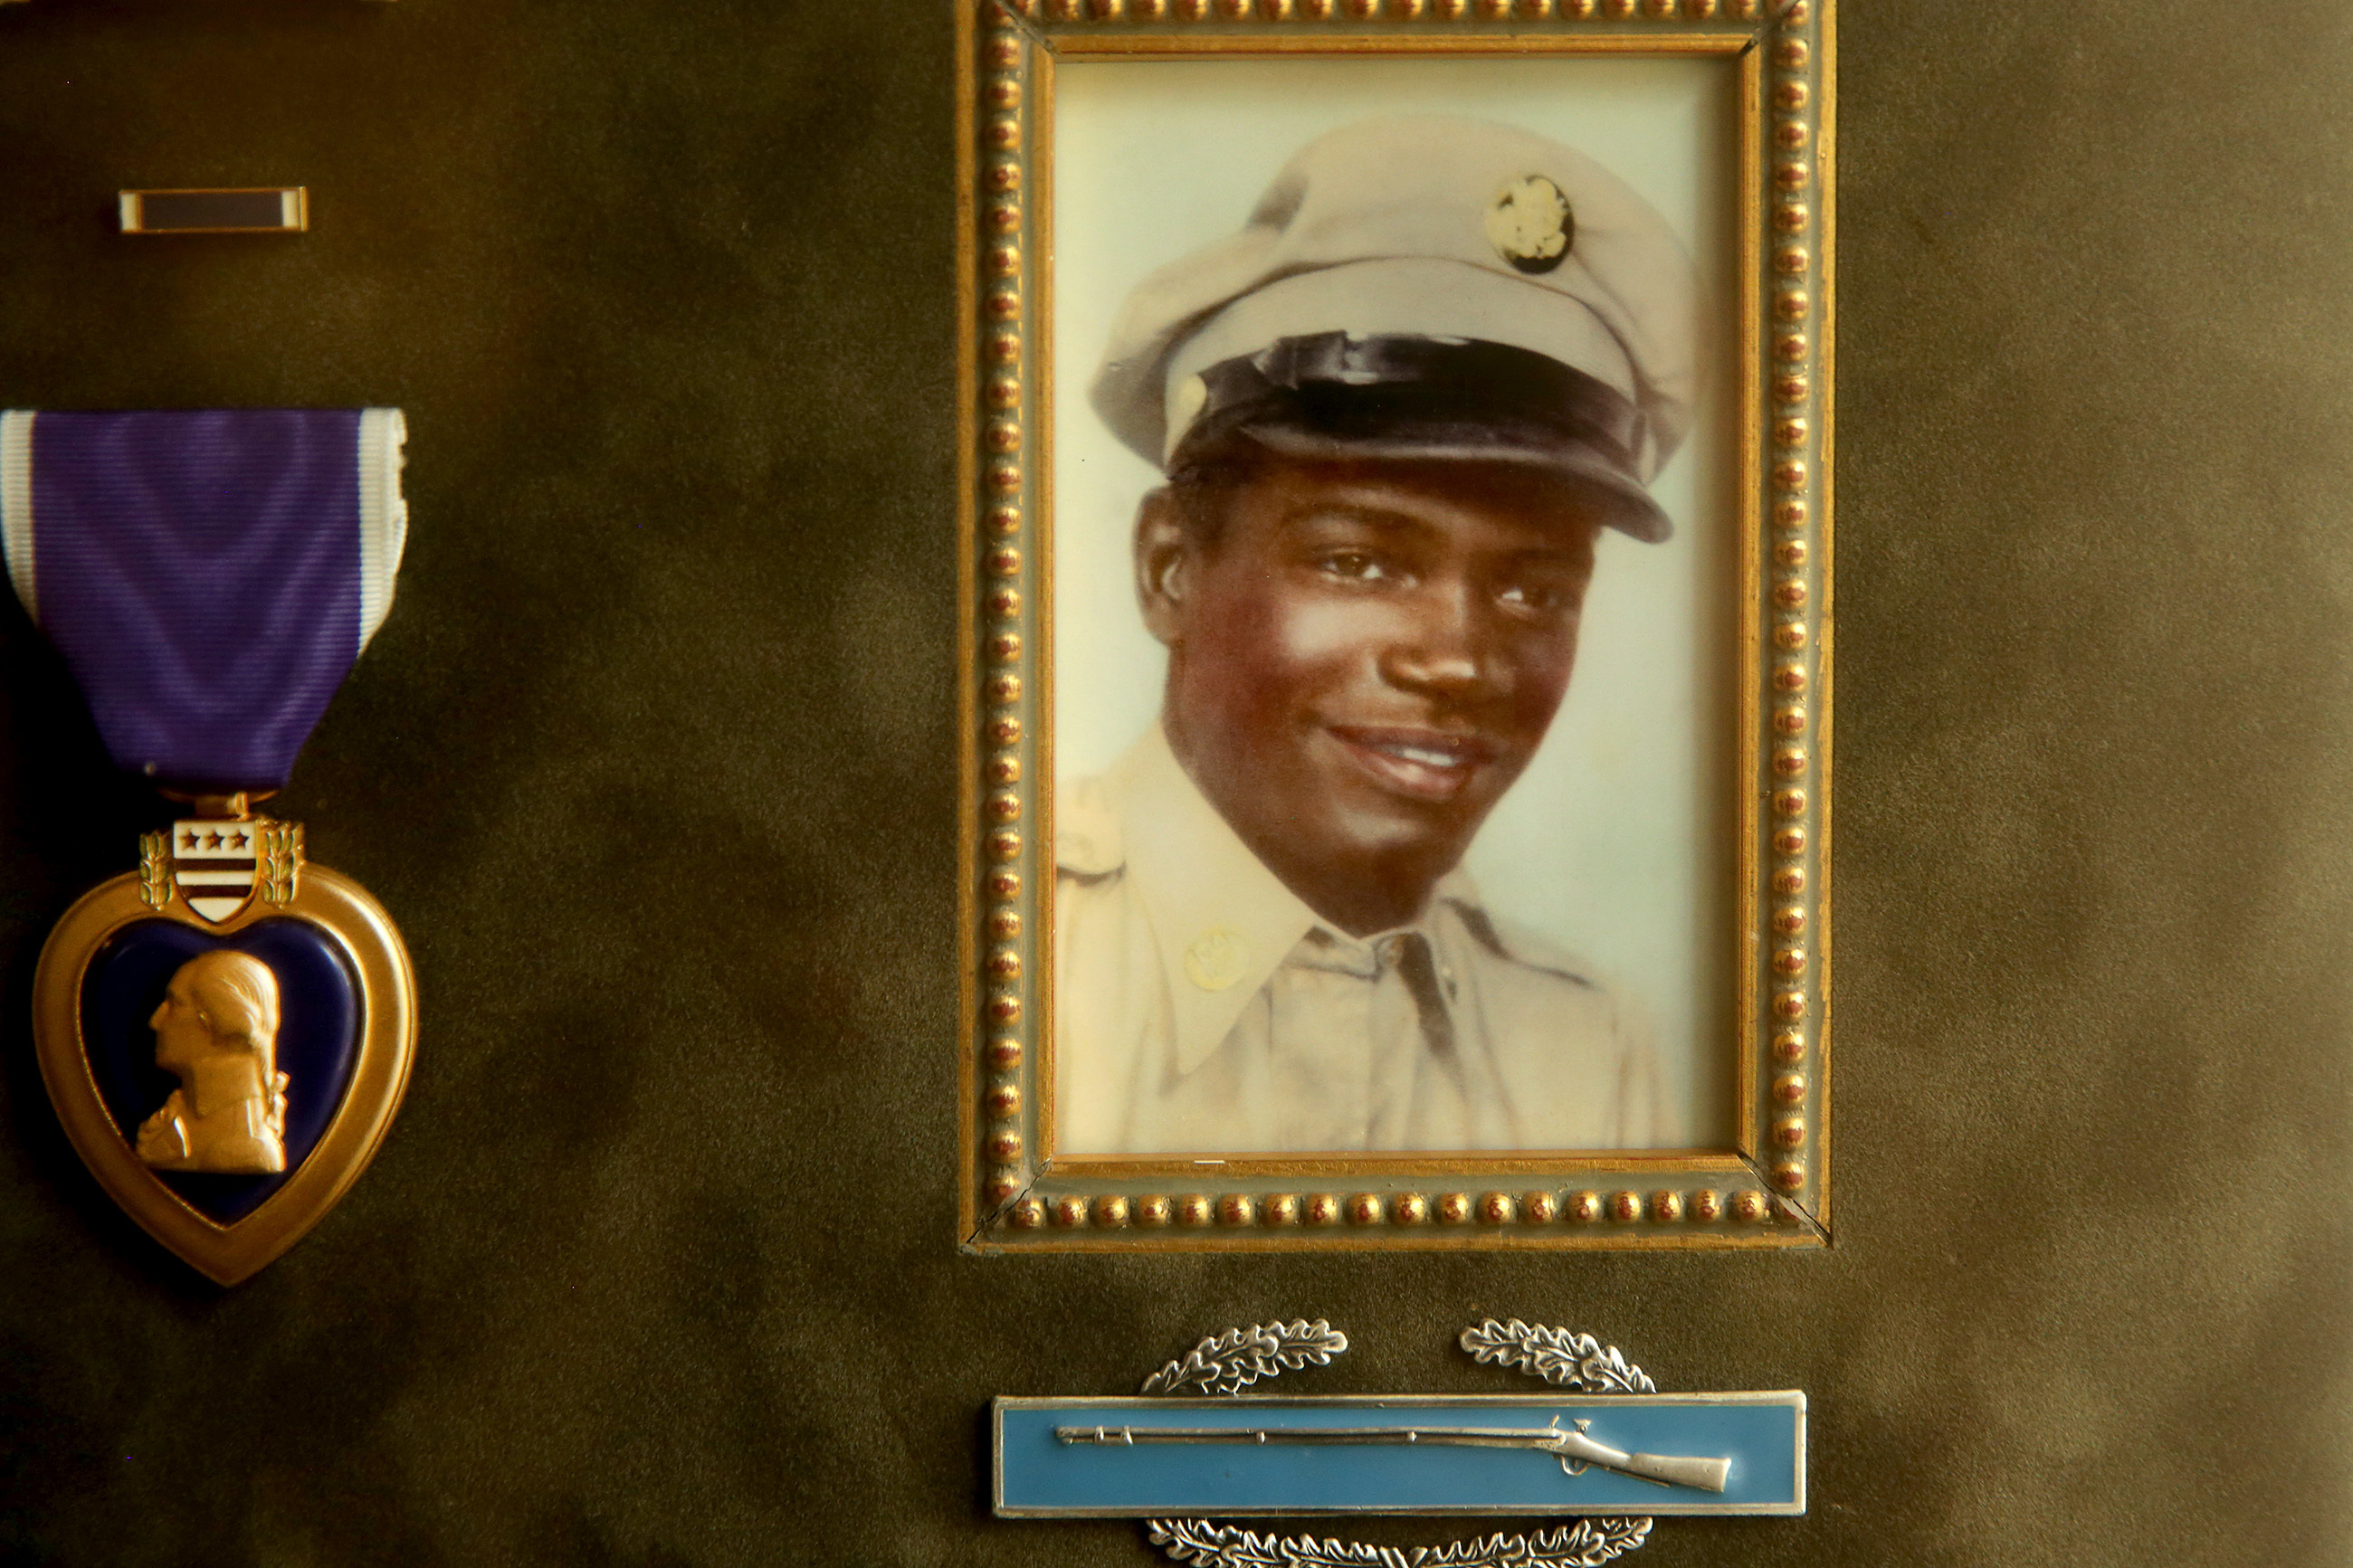 A photo of Cpl. Joseph Robinson and his Purple Heart medal is on display in his brother Wallace's home in Elkins Park, PA on June 18, 2018. Cpl. Joseph Robinson died a prisoner of war in North Korea in 1951.